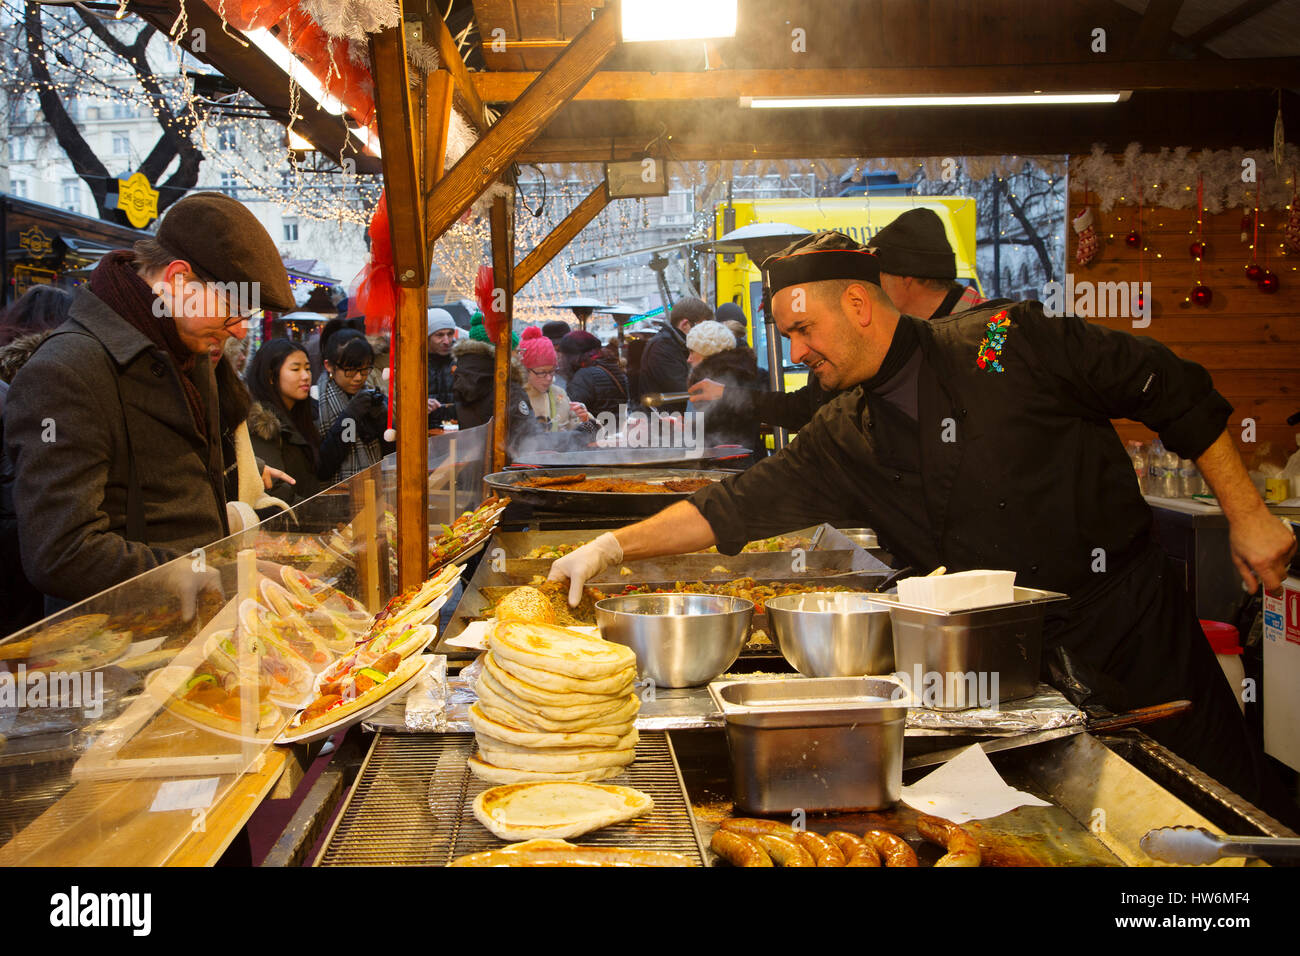 Weihnachtsmarkt Langos.Food A Man Cooking The Typical Langos Christmas Market Budapest